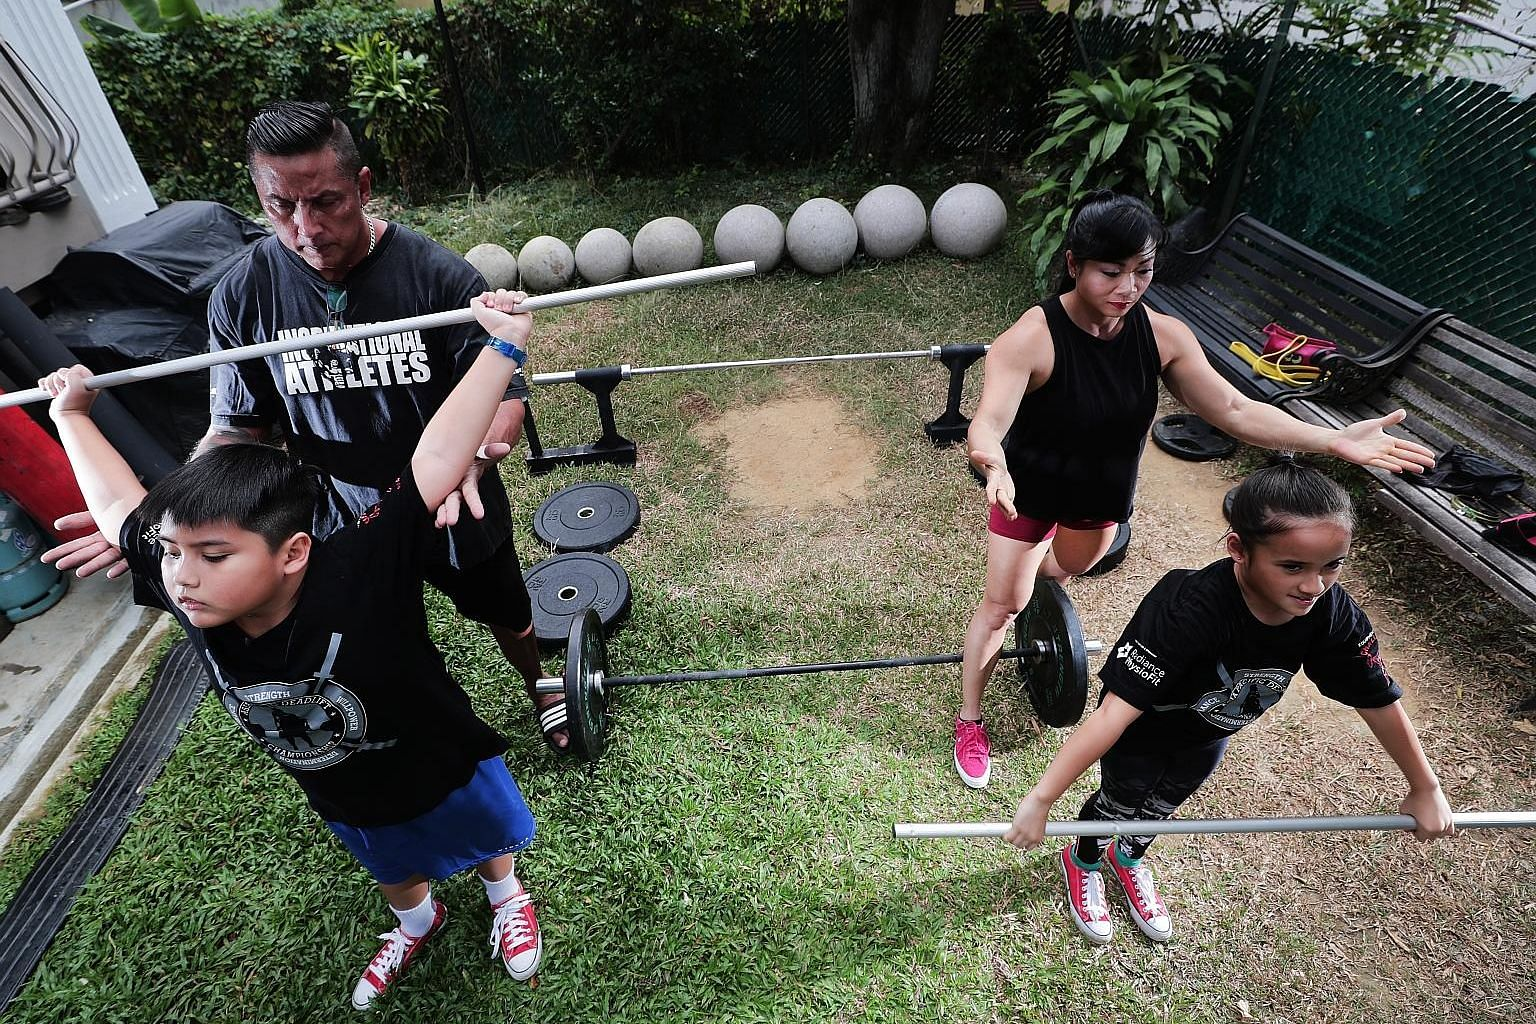 Mr Andrew Johnson and his wife Barbara Chng supervising their eight-year-old twins Brad and Ariel during training in the garden of their Katong home. A warm-up session, which involves mobility workouts and technique drills, is a must before the actua